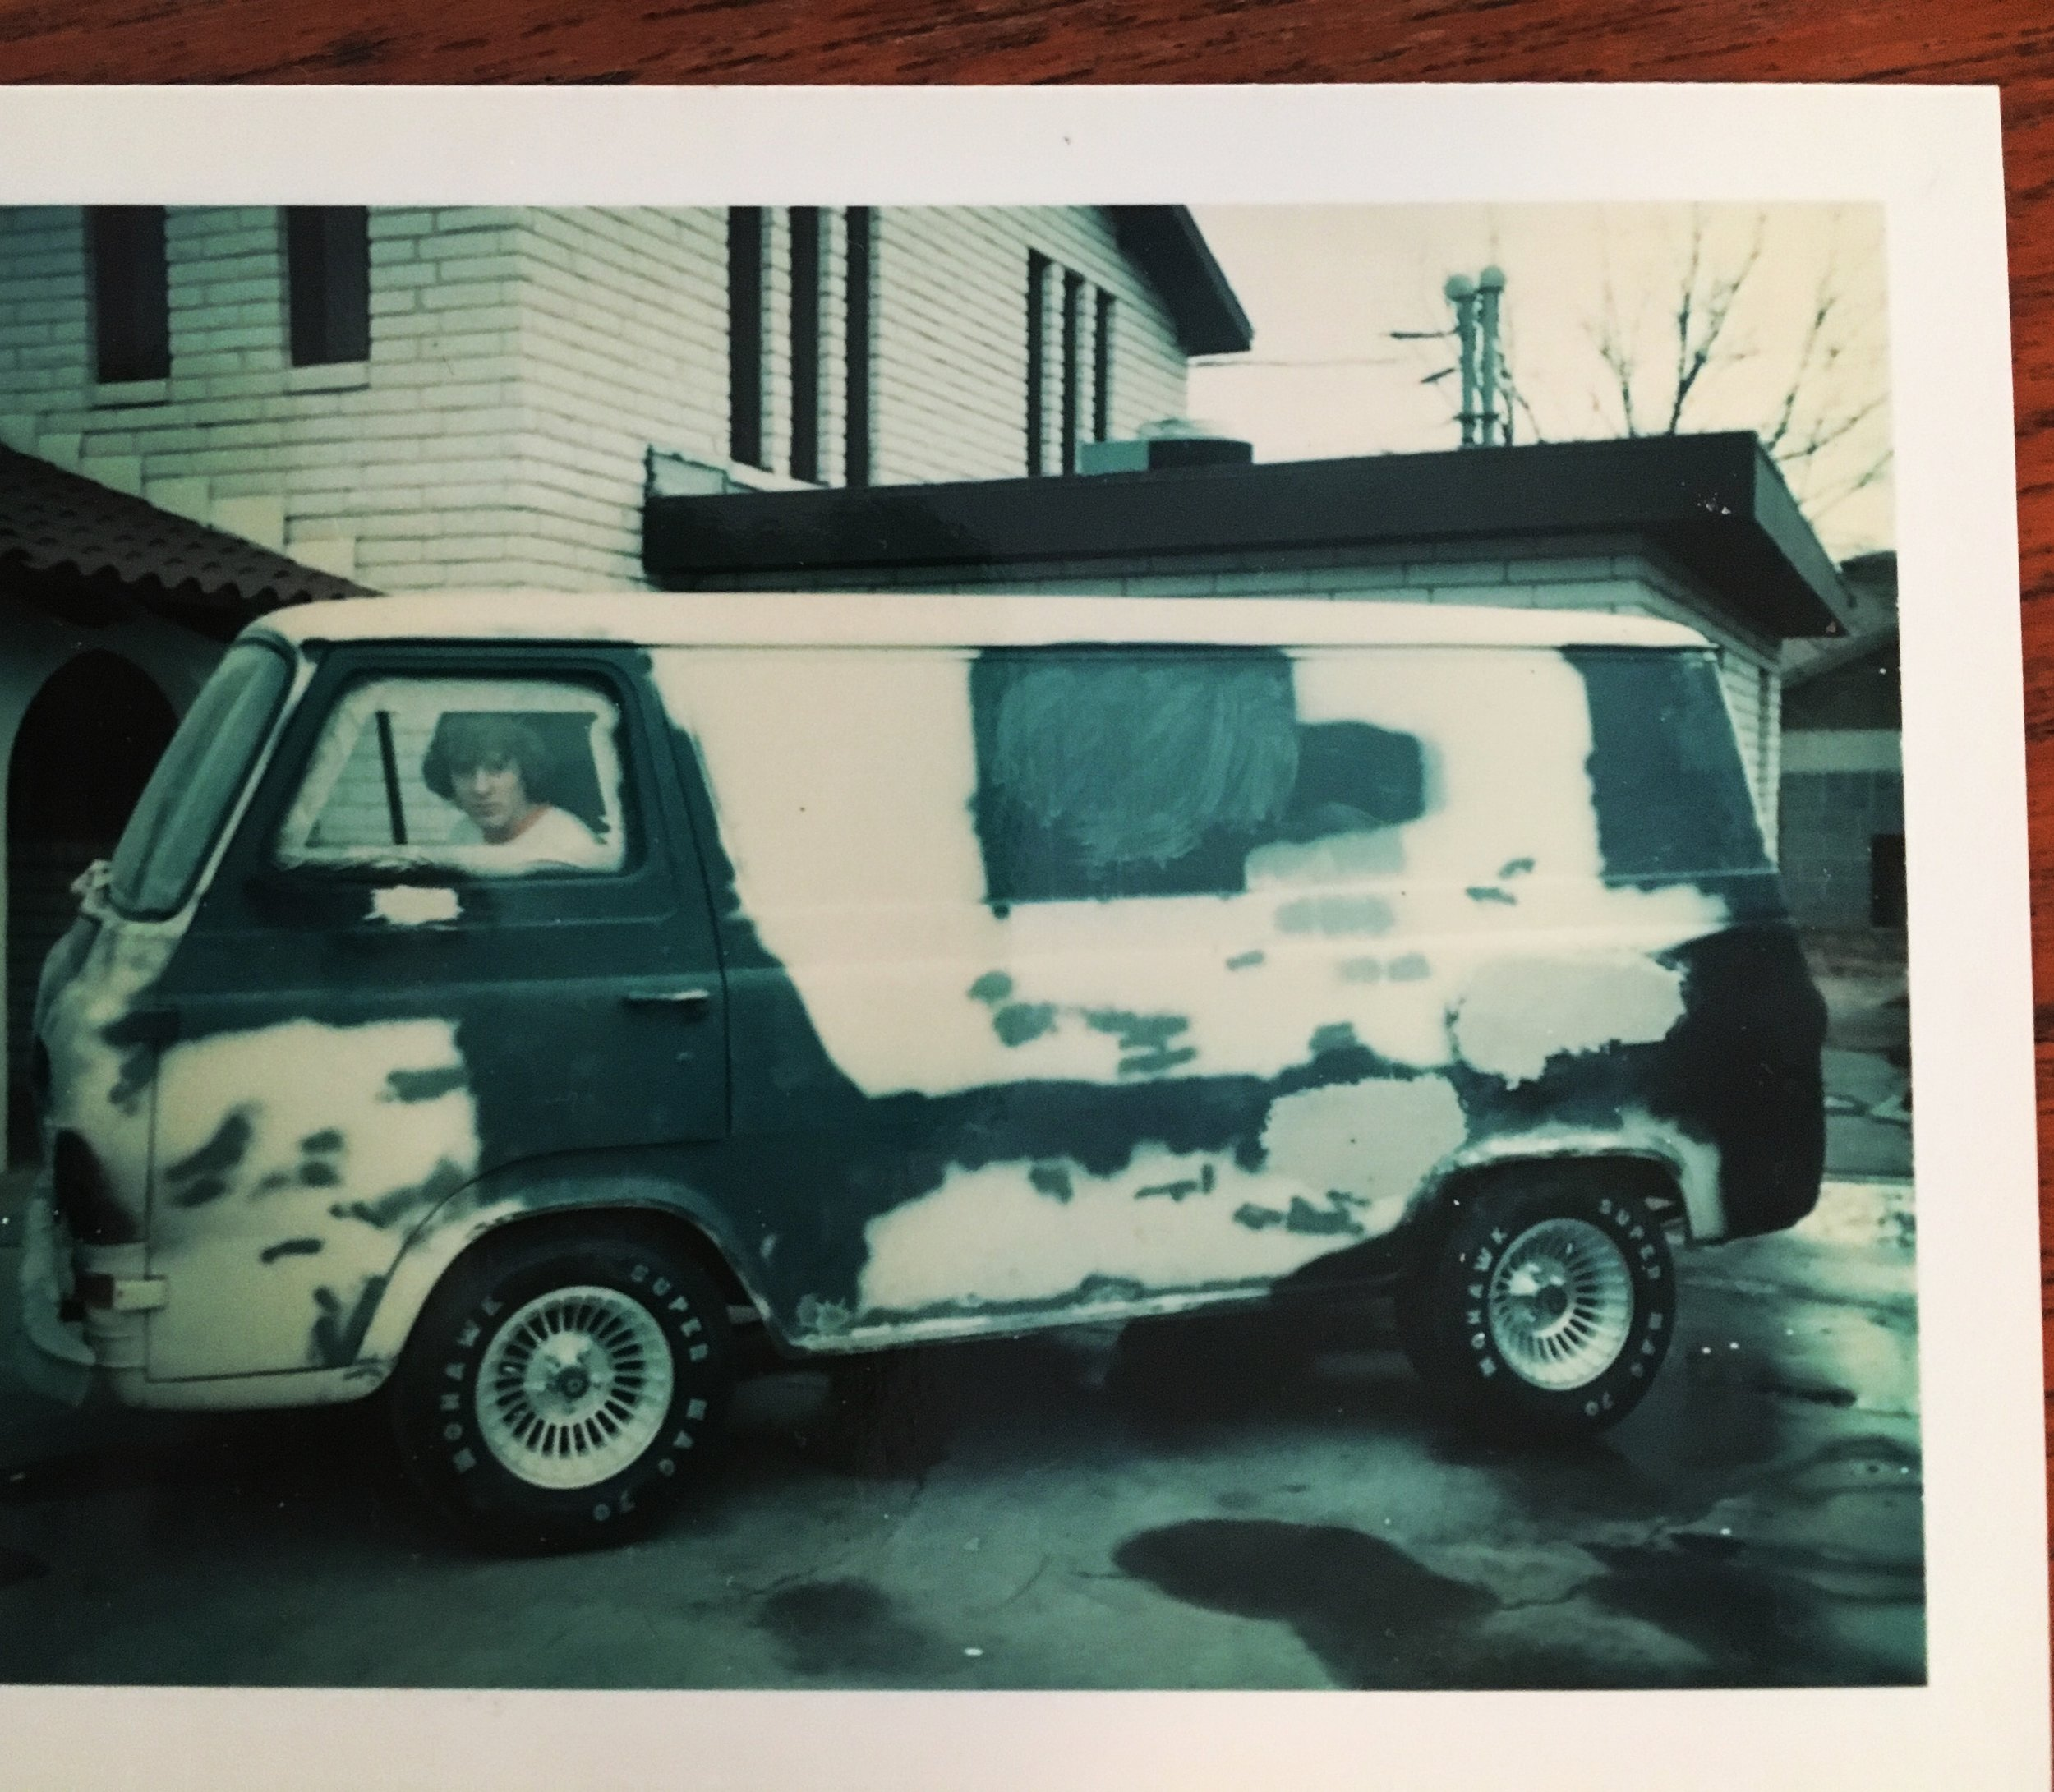 January 1977, Odessa, Texas.. This 1963 Ford Econoline was my passion. Purchased for $75., it had spent its life as a barbeque catering truck. The wheels and tires were a Christmas present from my parents (interestingly, December is a bad month for mags and tires and they were on sale!)